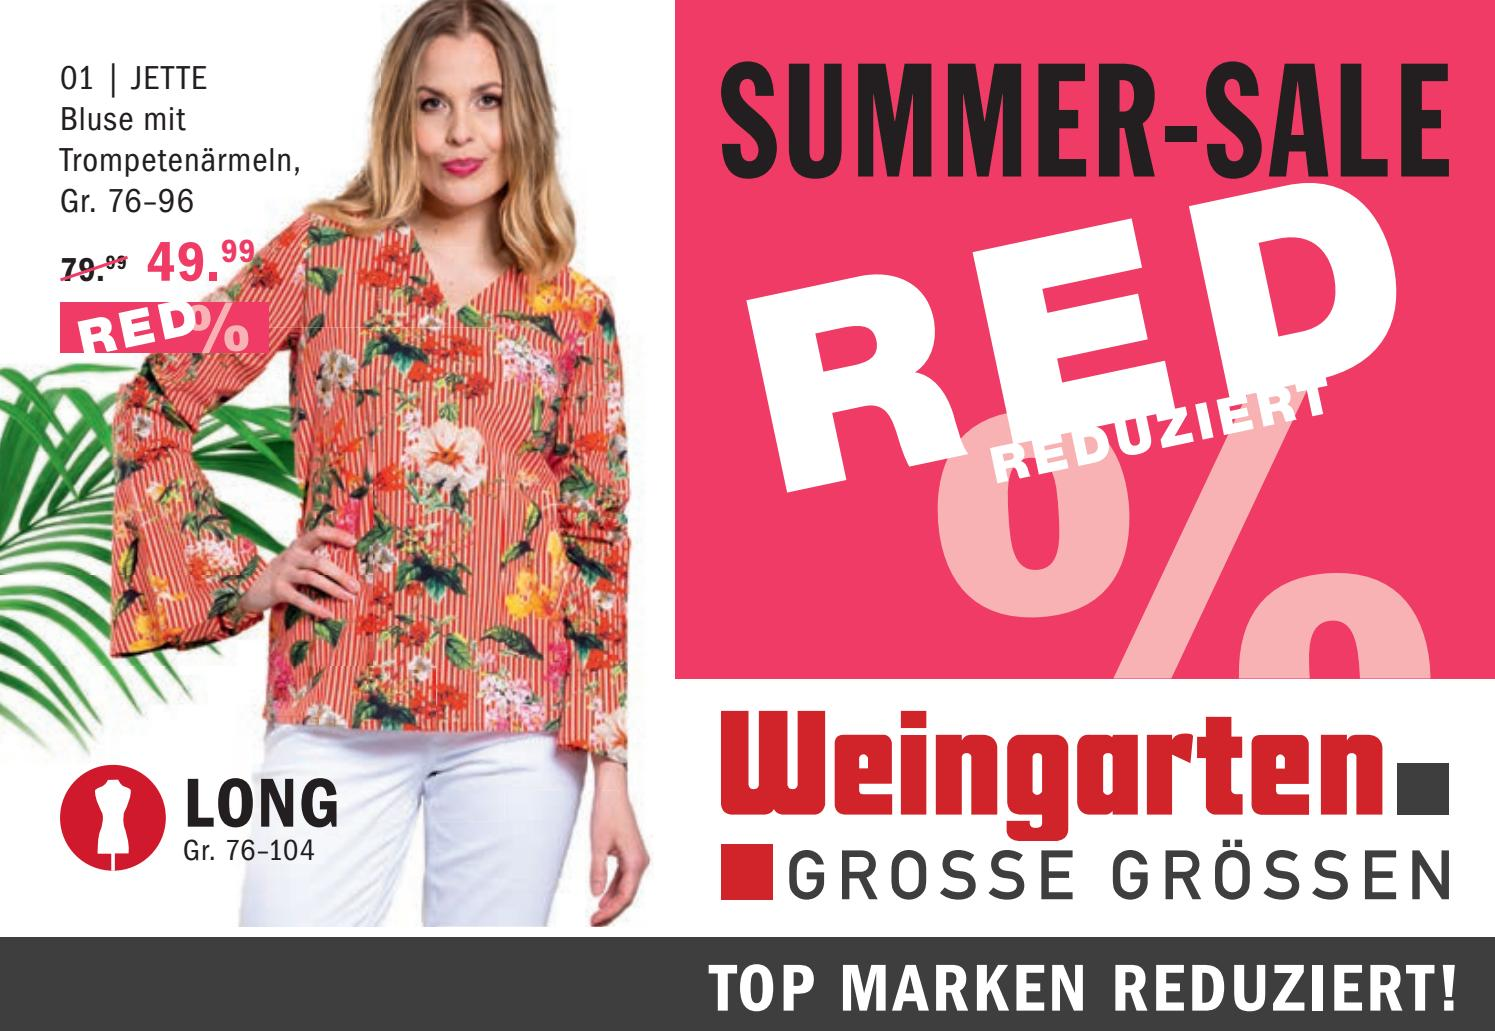 ef595708c5e183 Prospekt Long SSV Summer Sale by Modehaus Weingarten GmbH   Co. KG - issuu